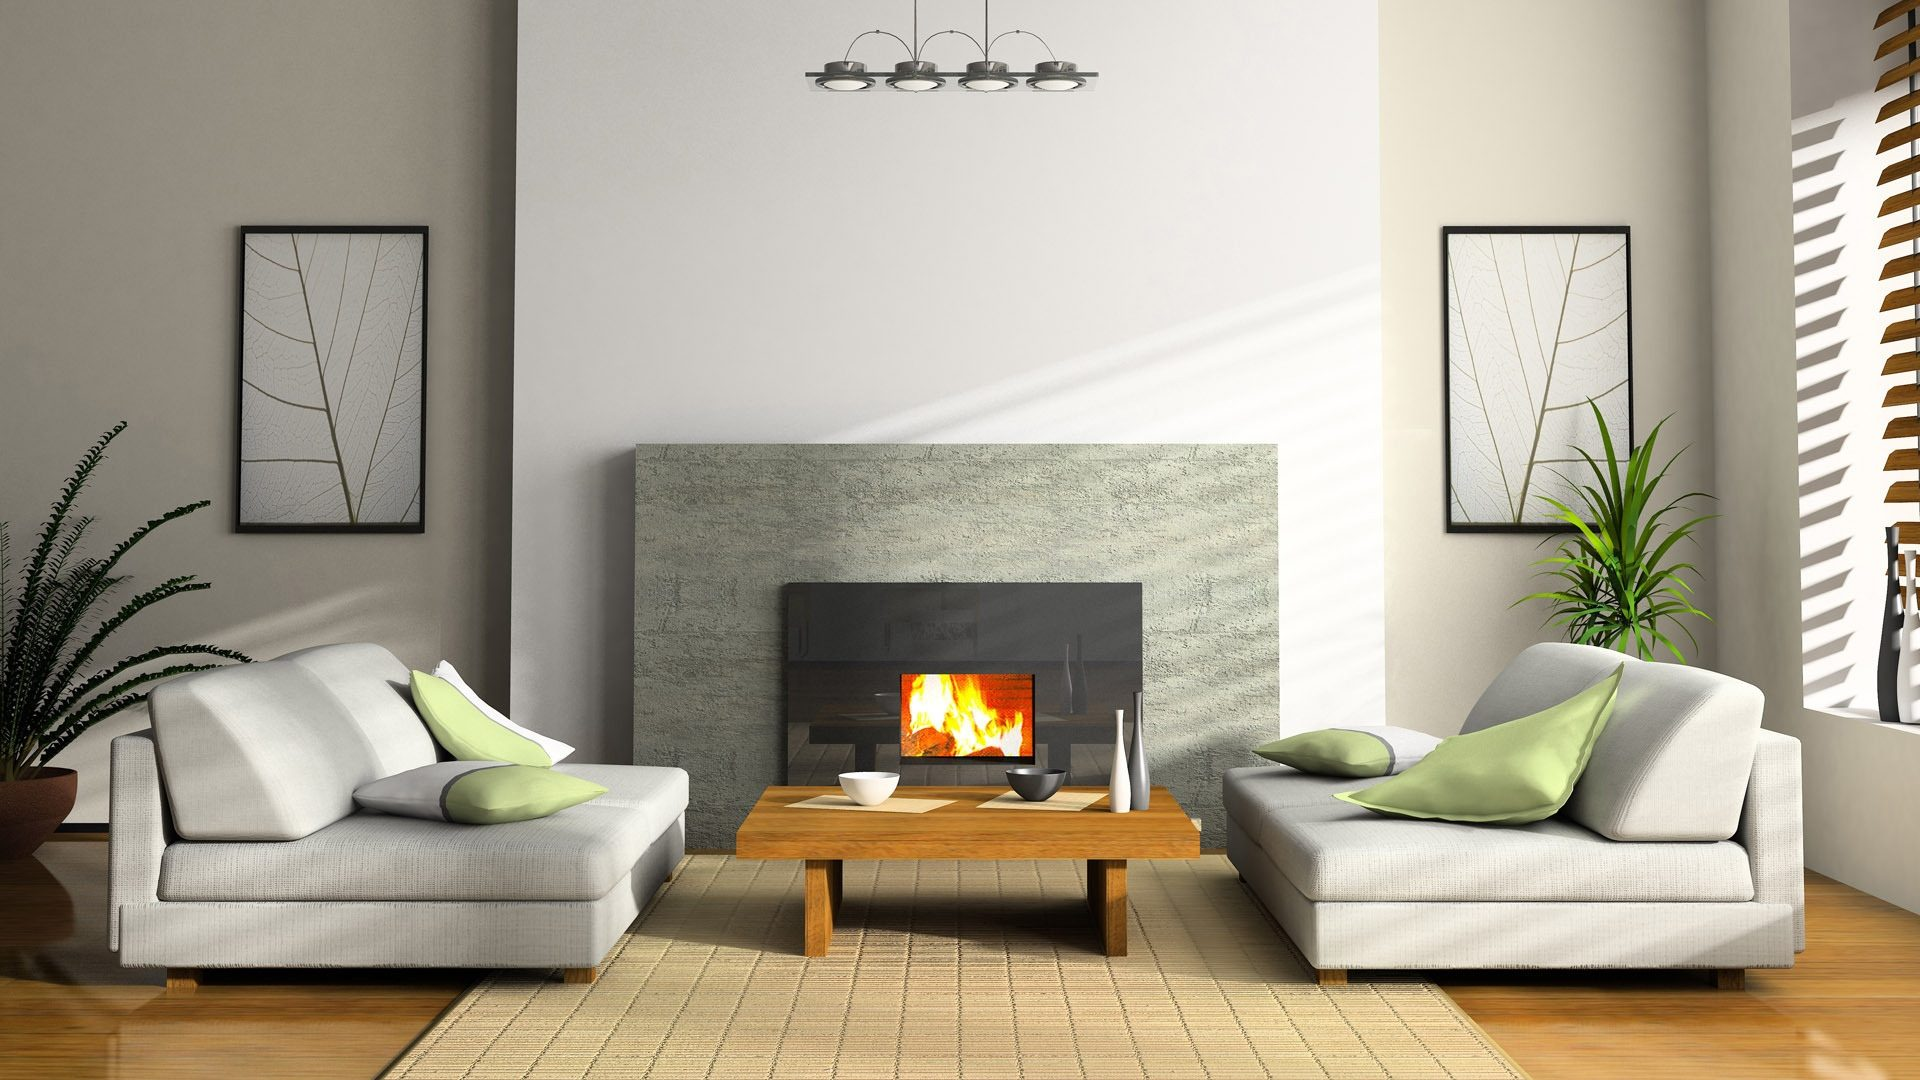 paper_vase_sofa_design_interior_fireplace_painting_apartment_room_chair_lamp_plant_style_table_cup_31419_1920x1080 (1)